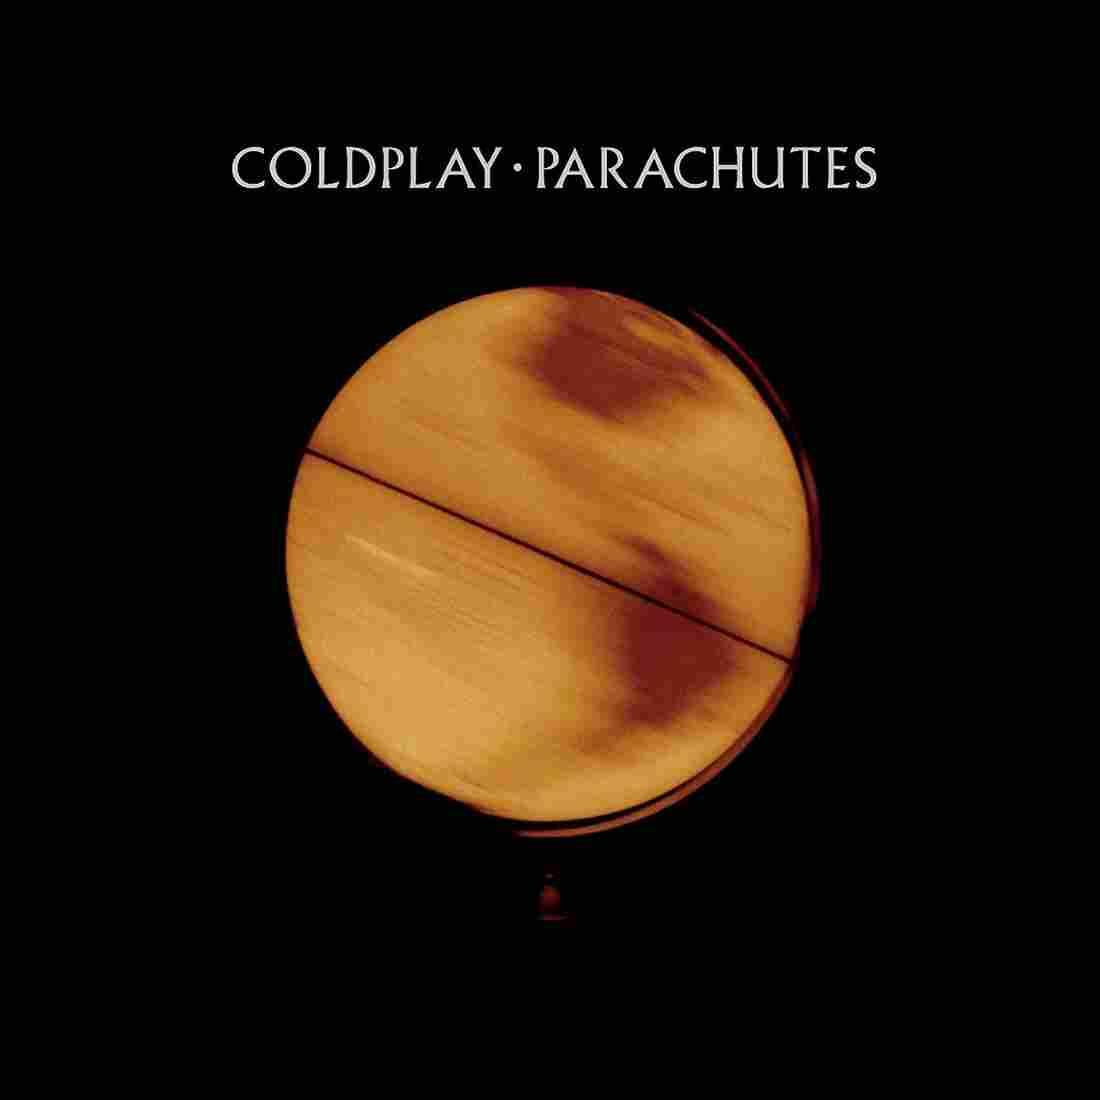 Coldplay, Parachutes